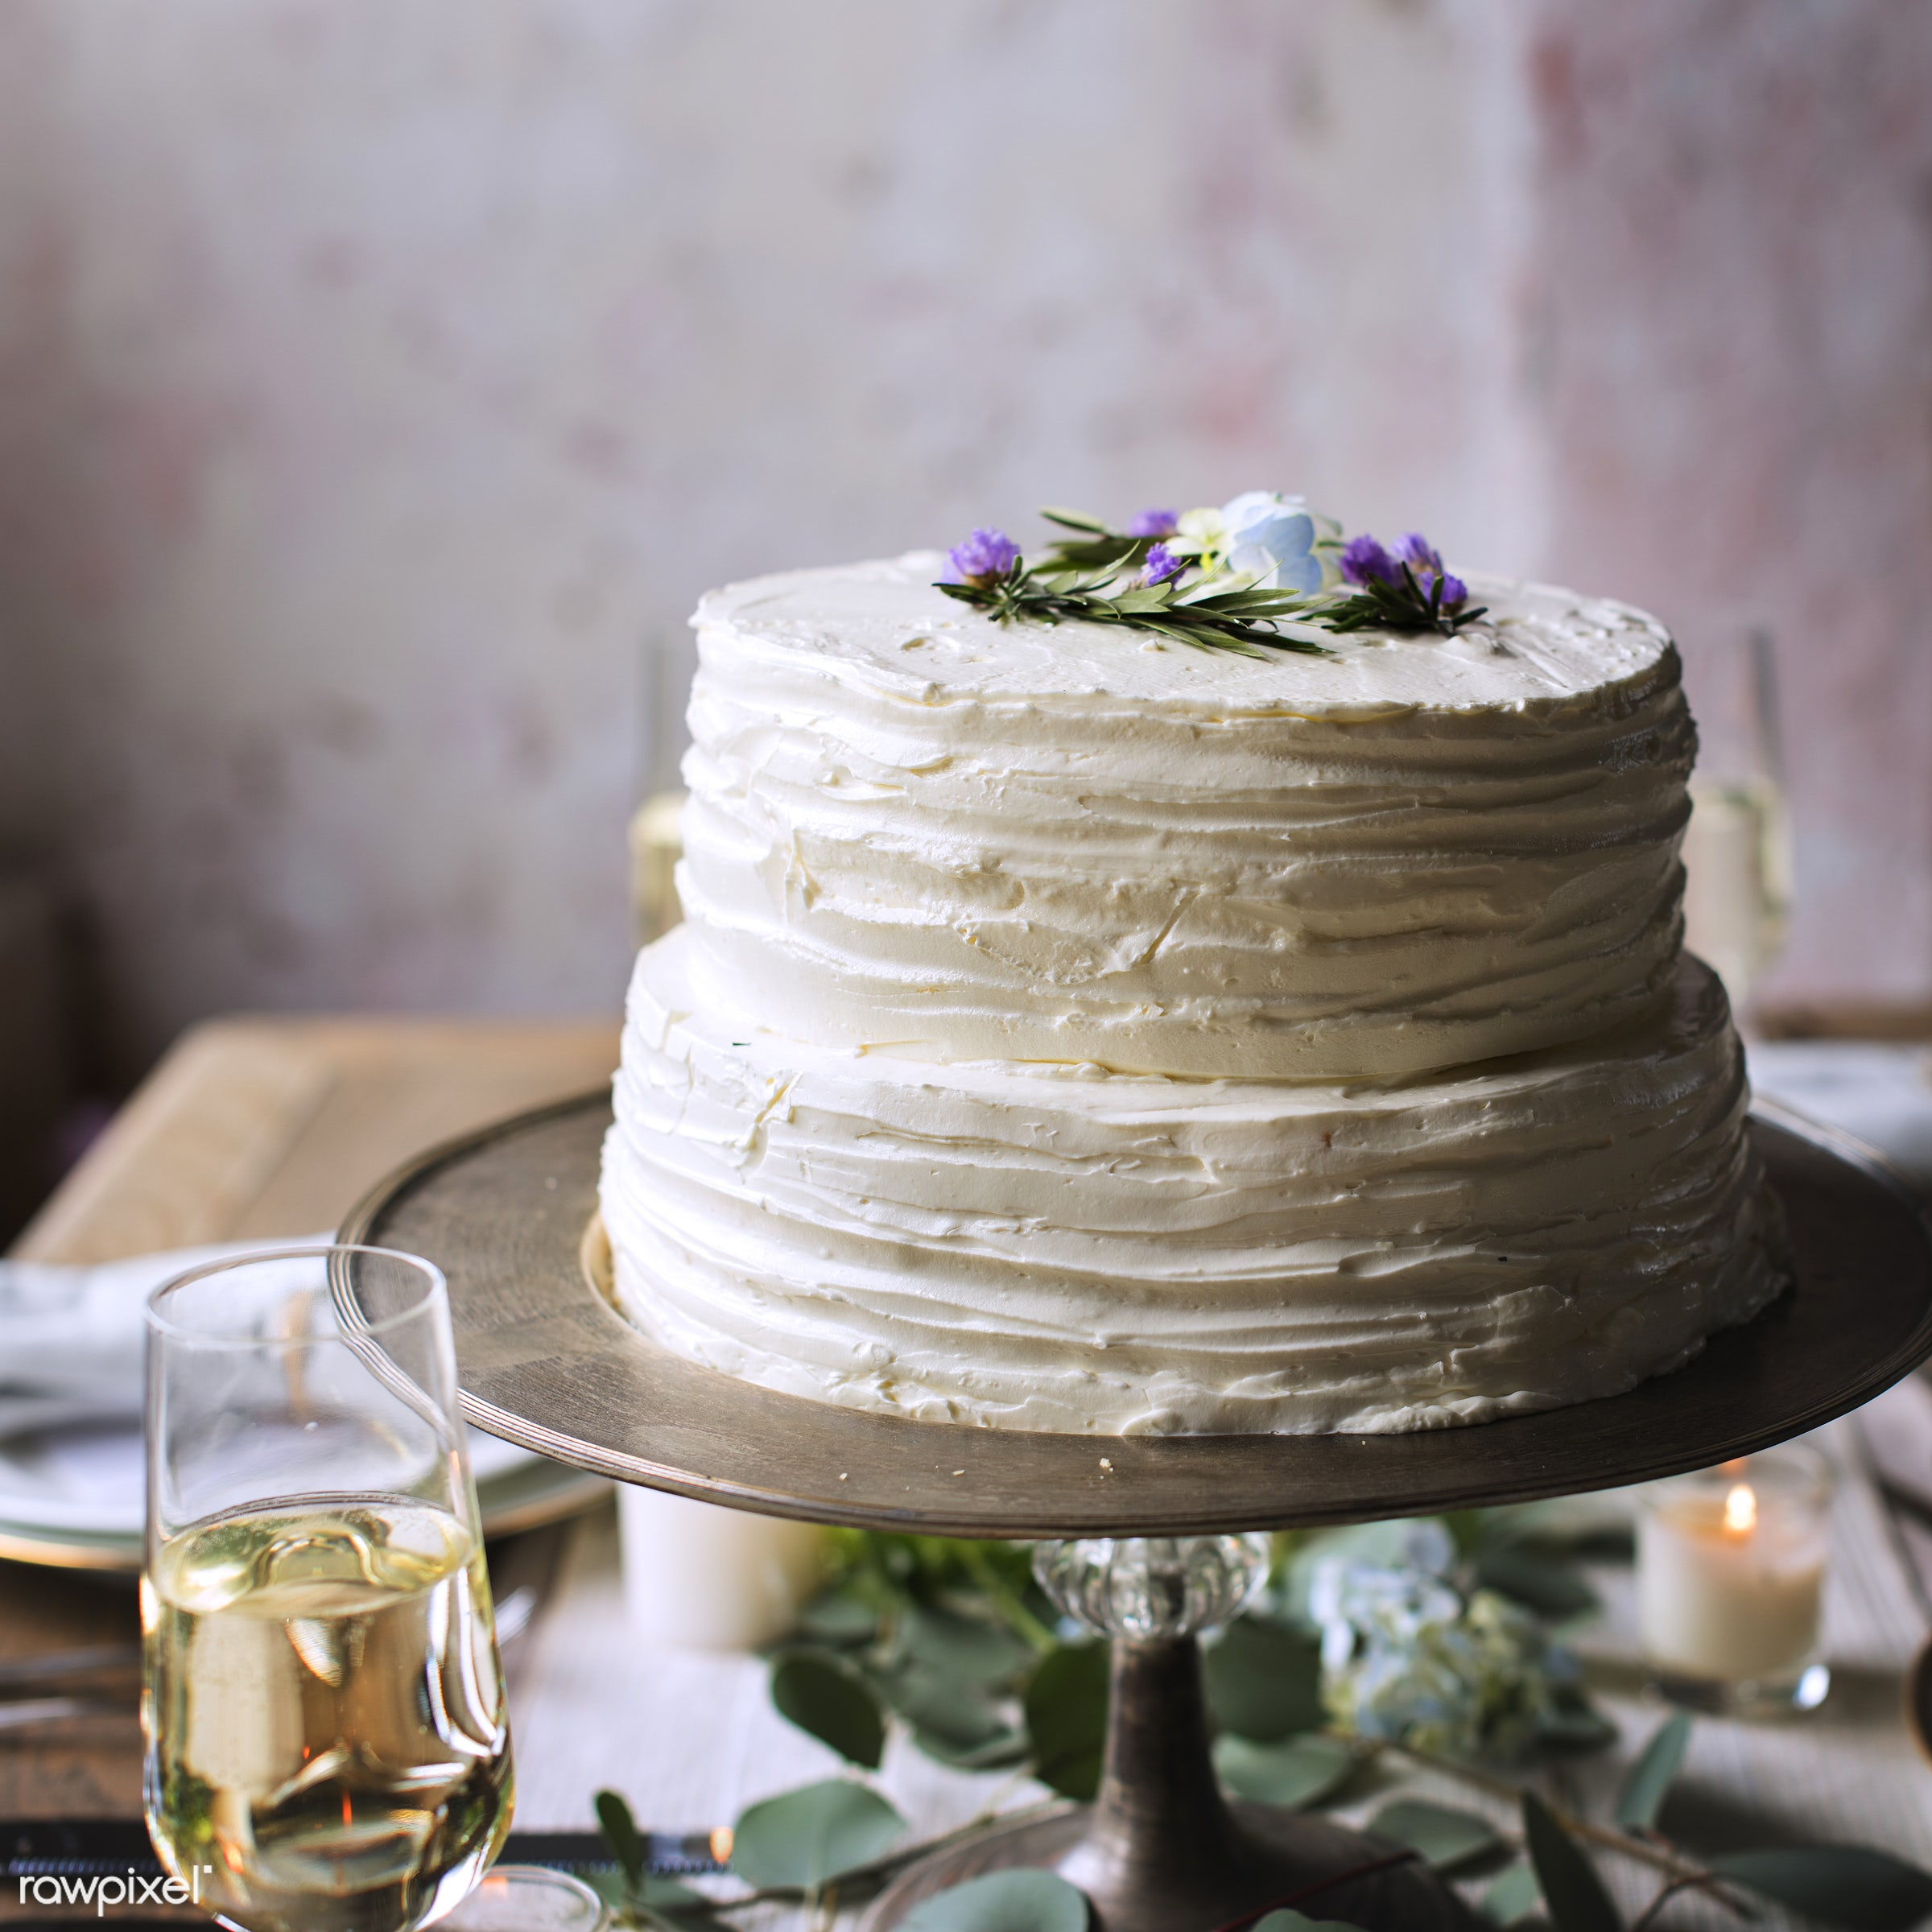 dish, festive, birthday, recipe, occasion, appetite, party, taste, baked, decor, event, banquet, flowers, celebrate, gourmet...